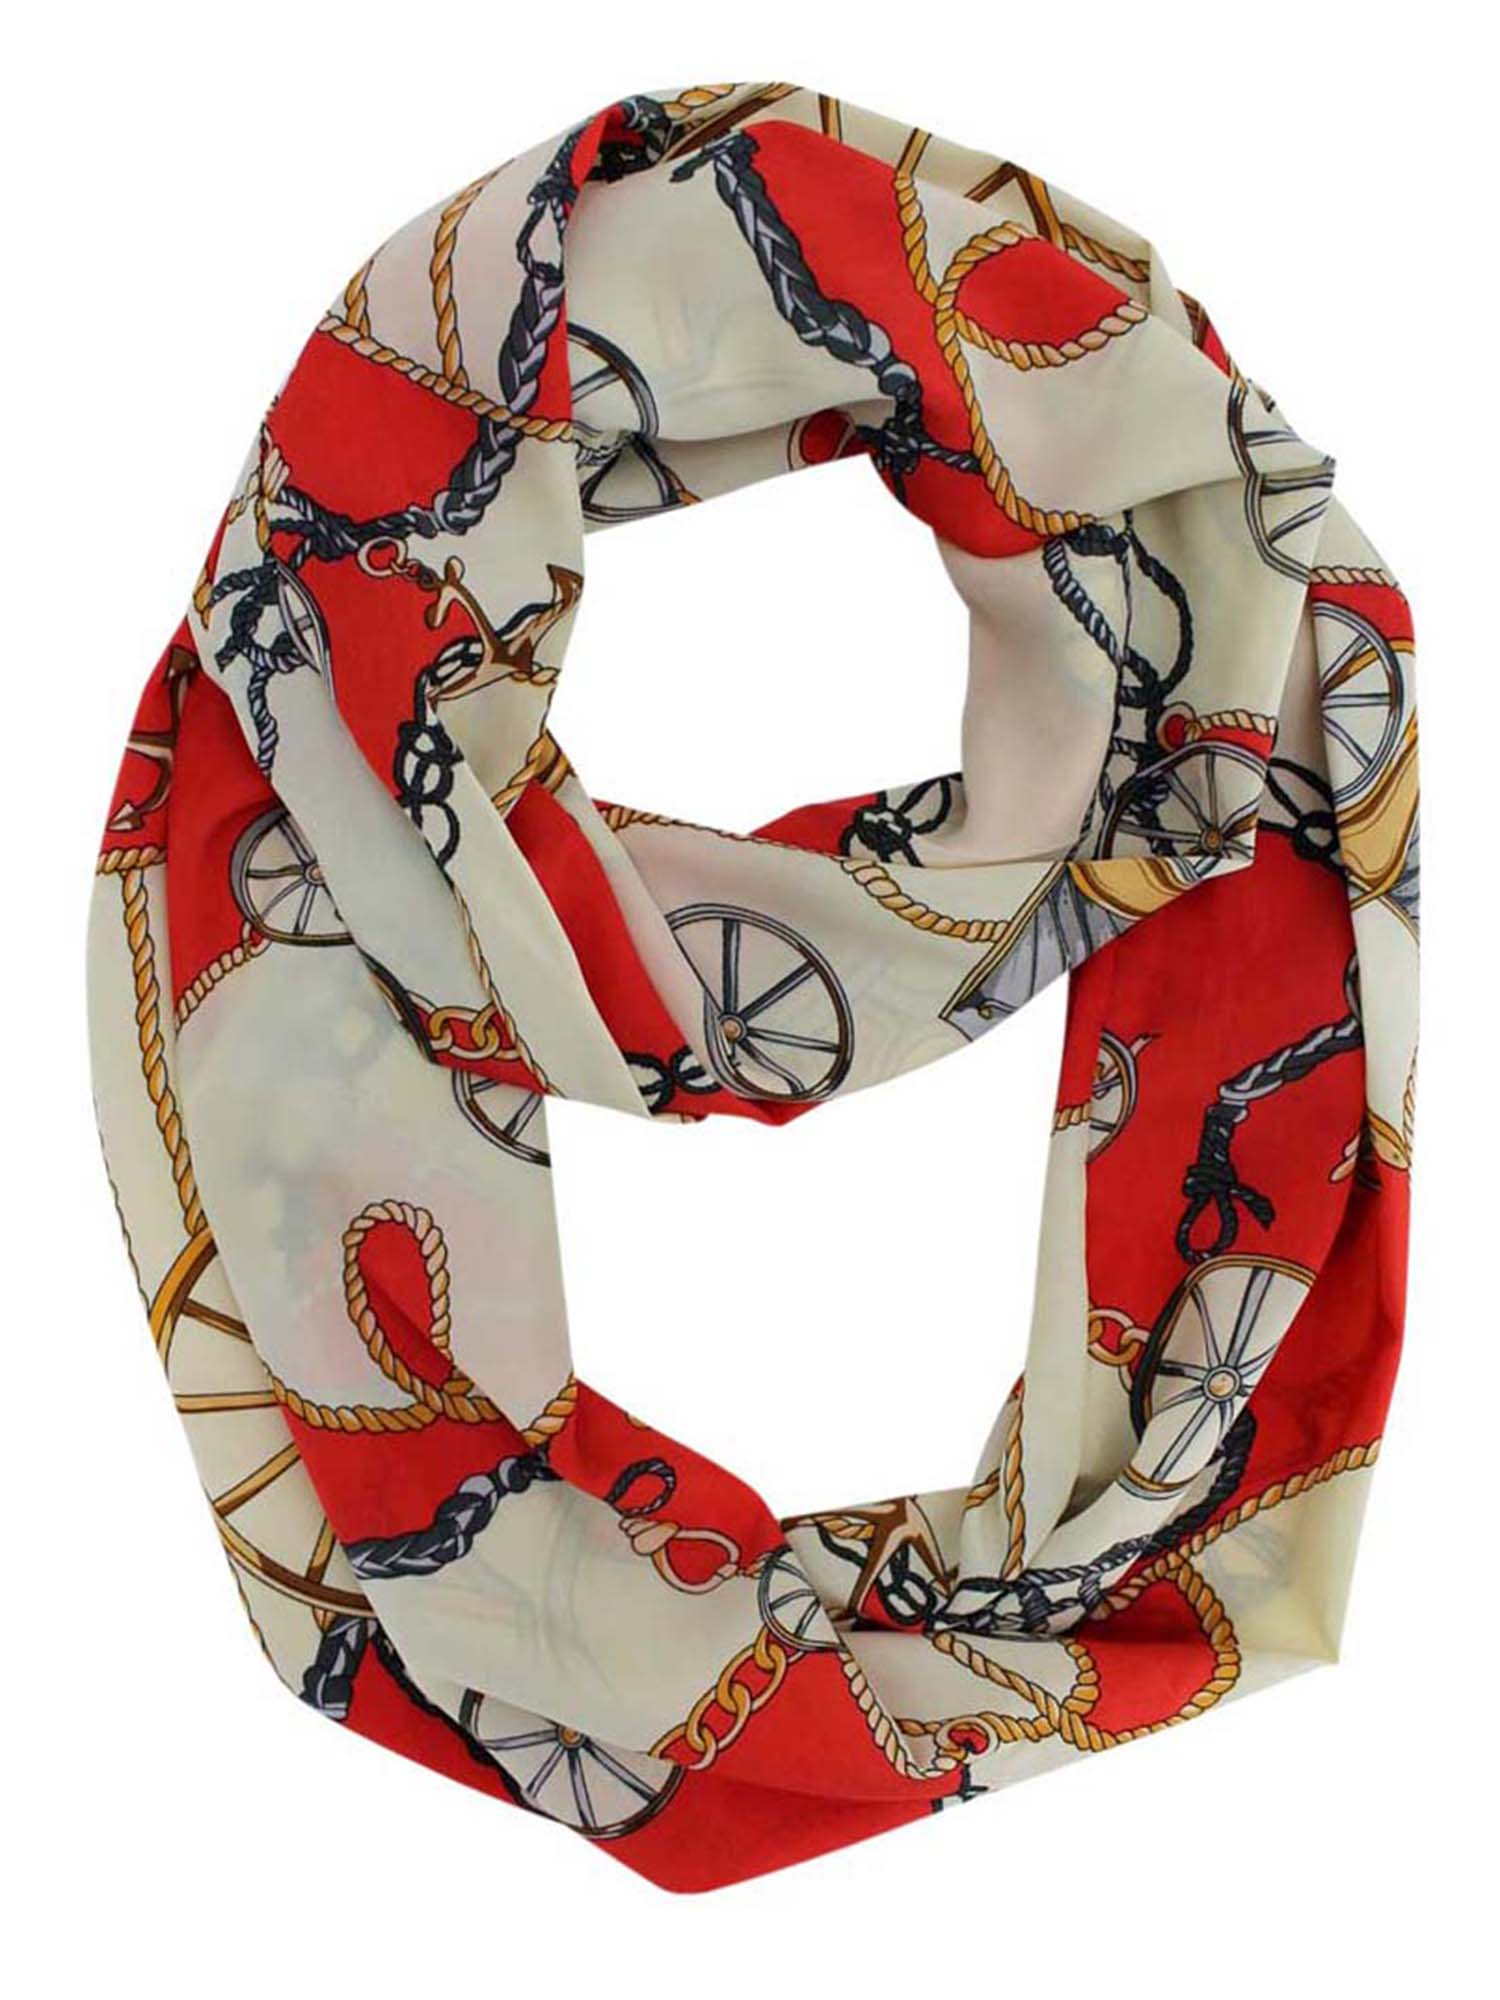 *New Nautical Anchor Infinity Scarf Lightweight Semi Sheer Beach Wrap Scarf NWT